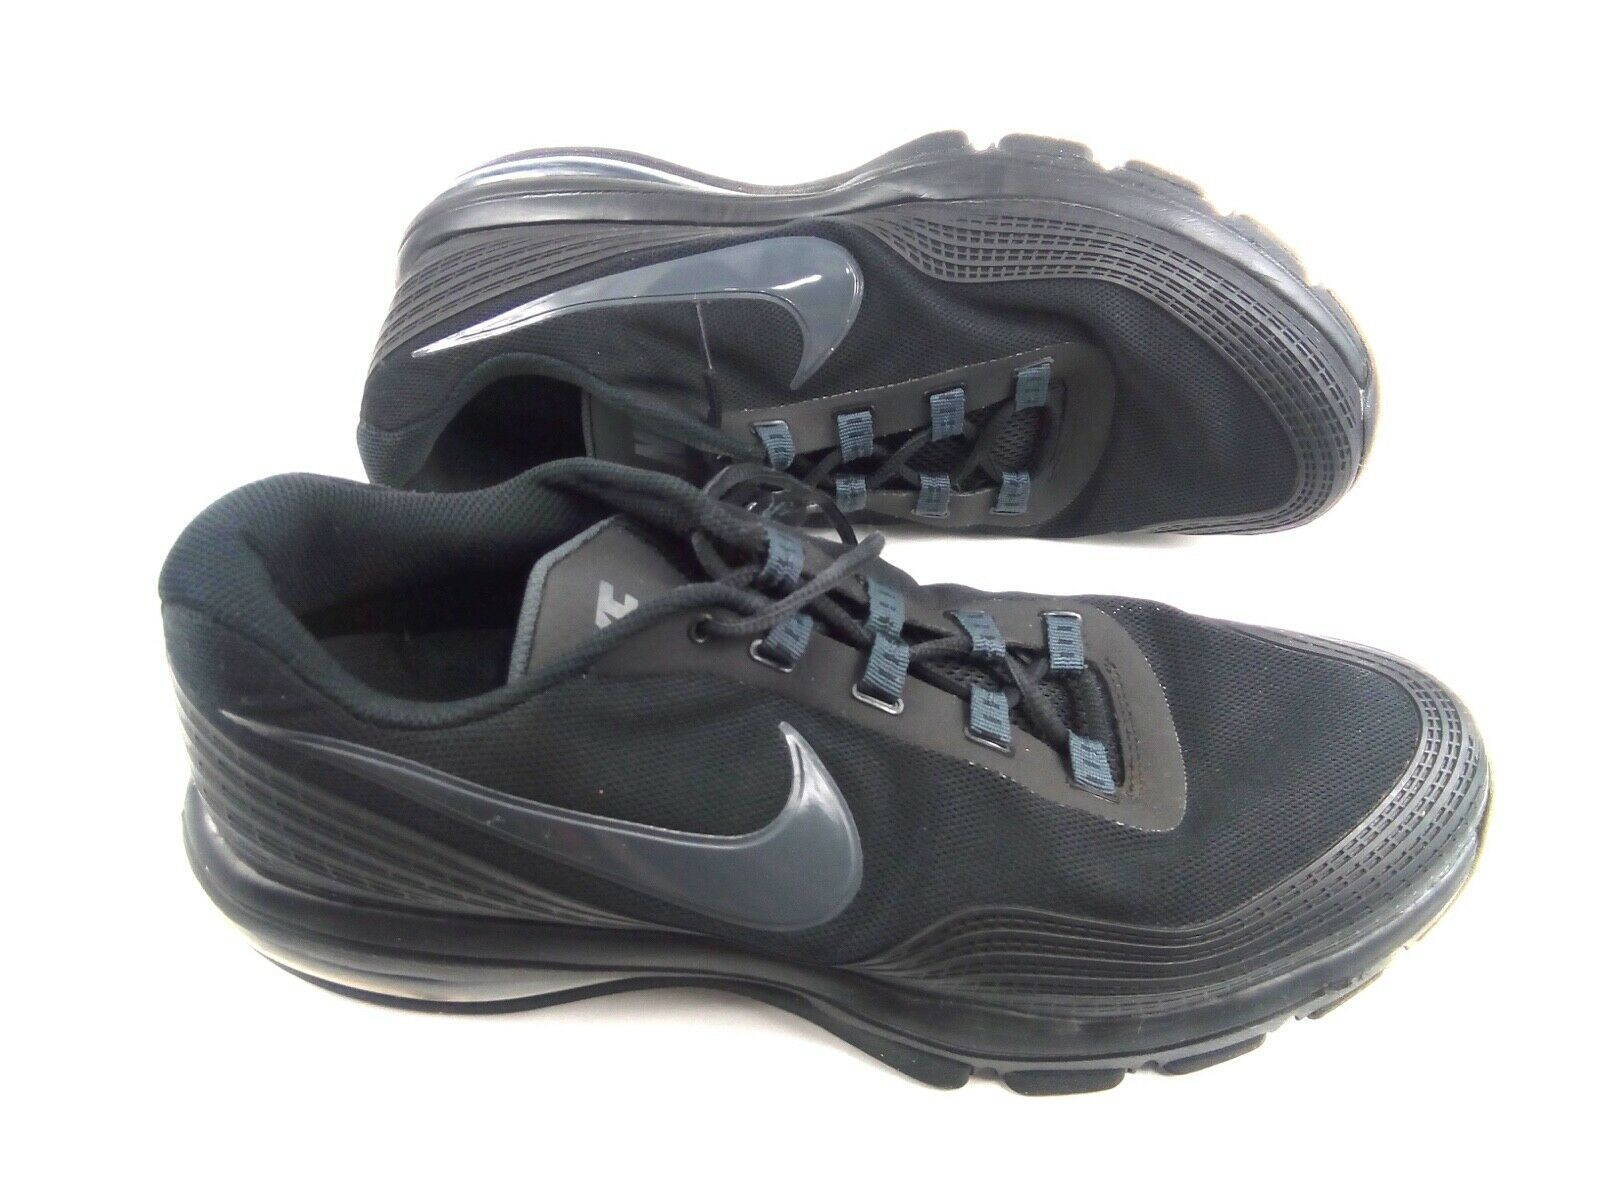 Nike Max Air TR 365 Men Sneakers 14 Black/Anthracite 2014 Running Training  $136